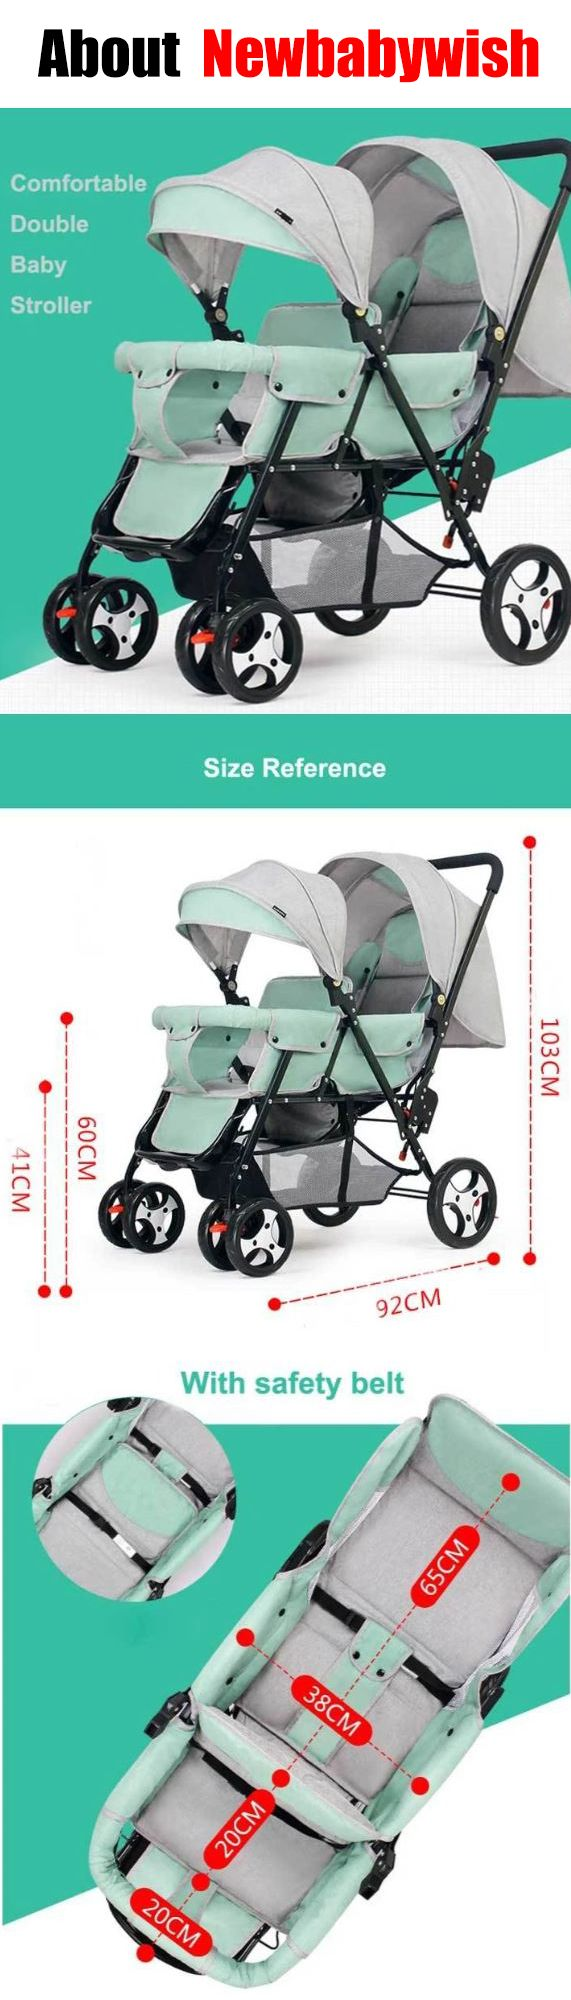 Double Jogging Stroller in 2020 Double jogging stroller